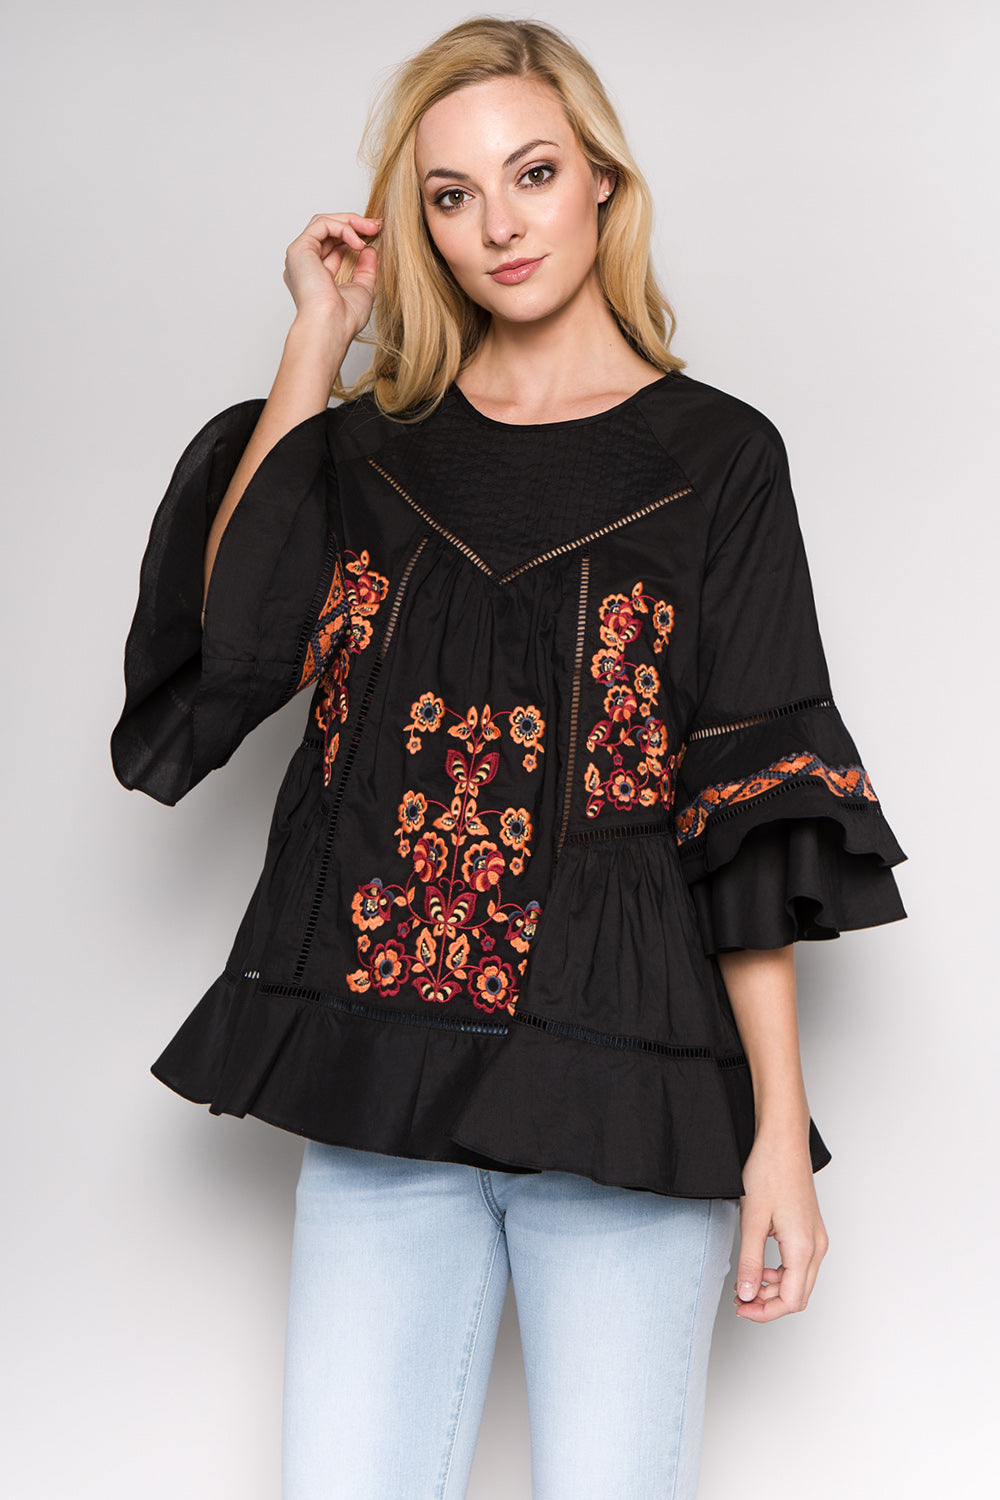 T2252 Embroidery Top